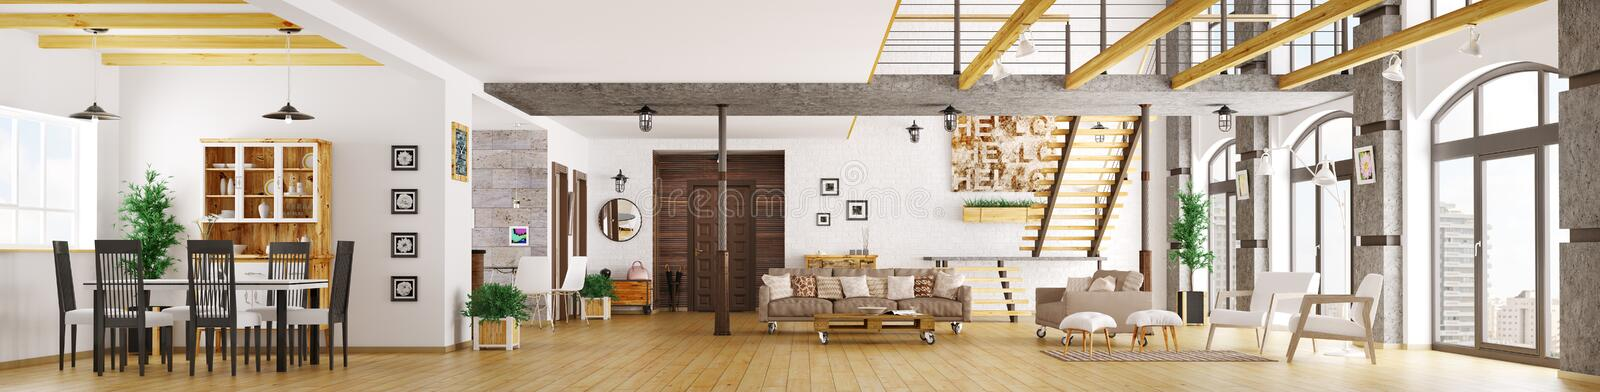 Download Modern Loft Apartment Interior Panorama 3d Render Stock Illustration